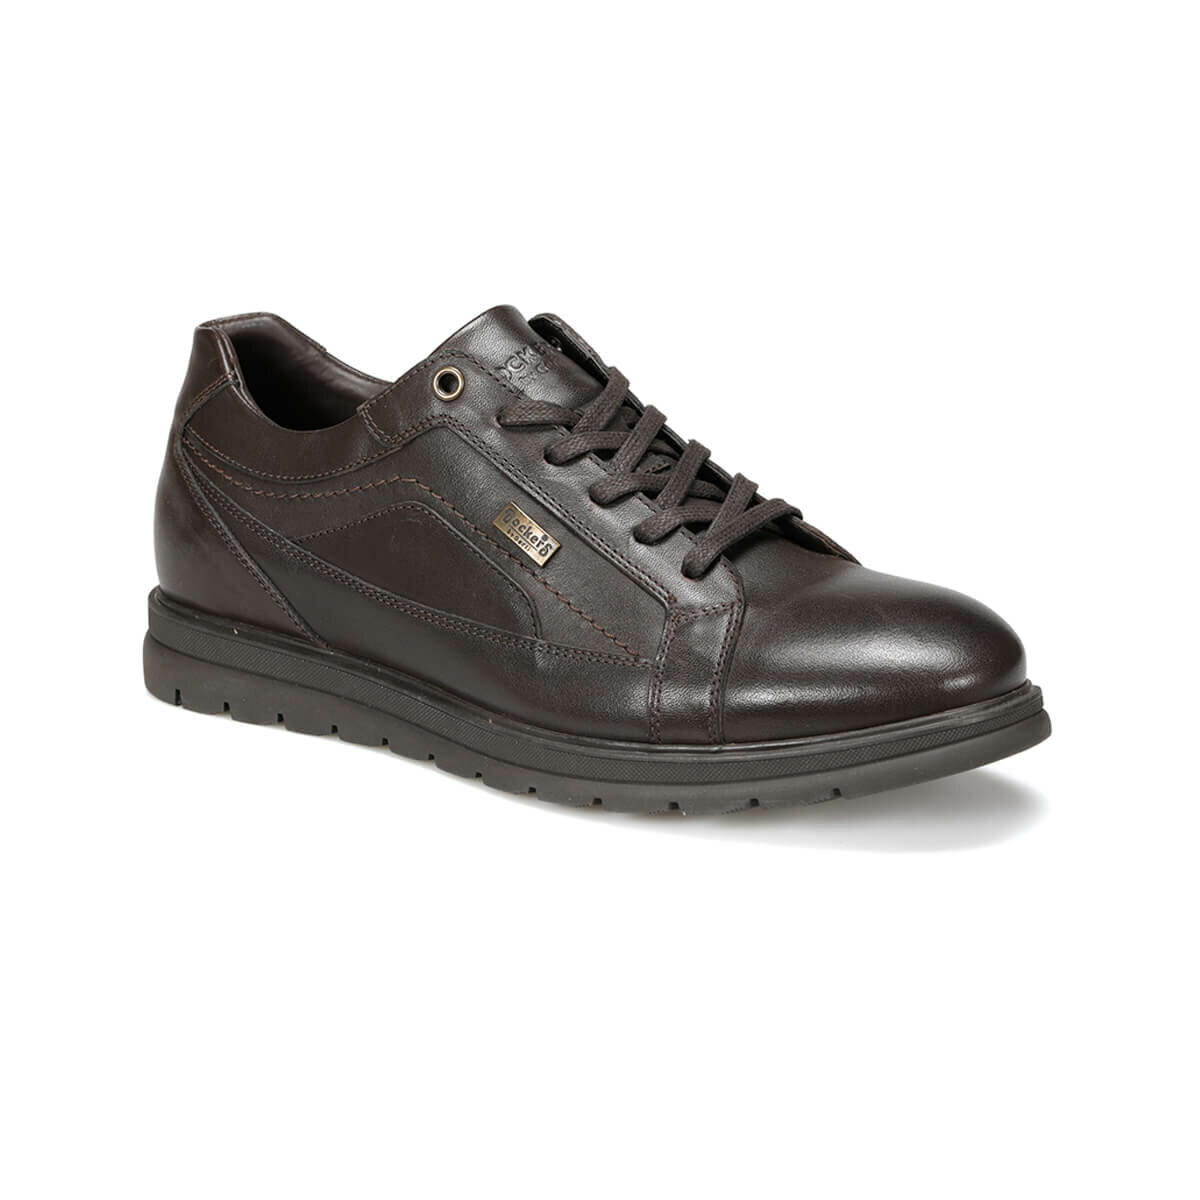 FLO 227047 9PR Brown Men Casual Shoes By Dockers The Gerle